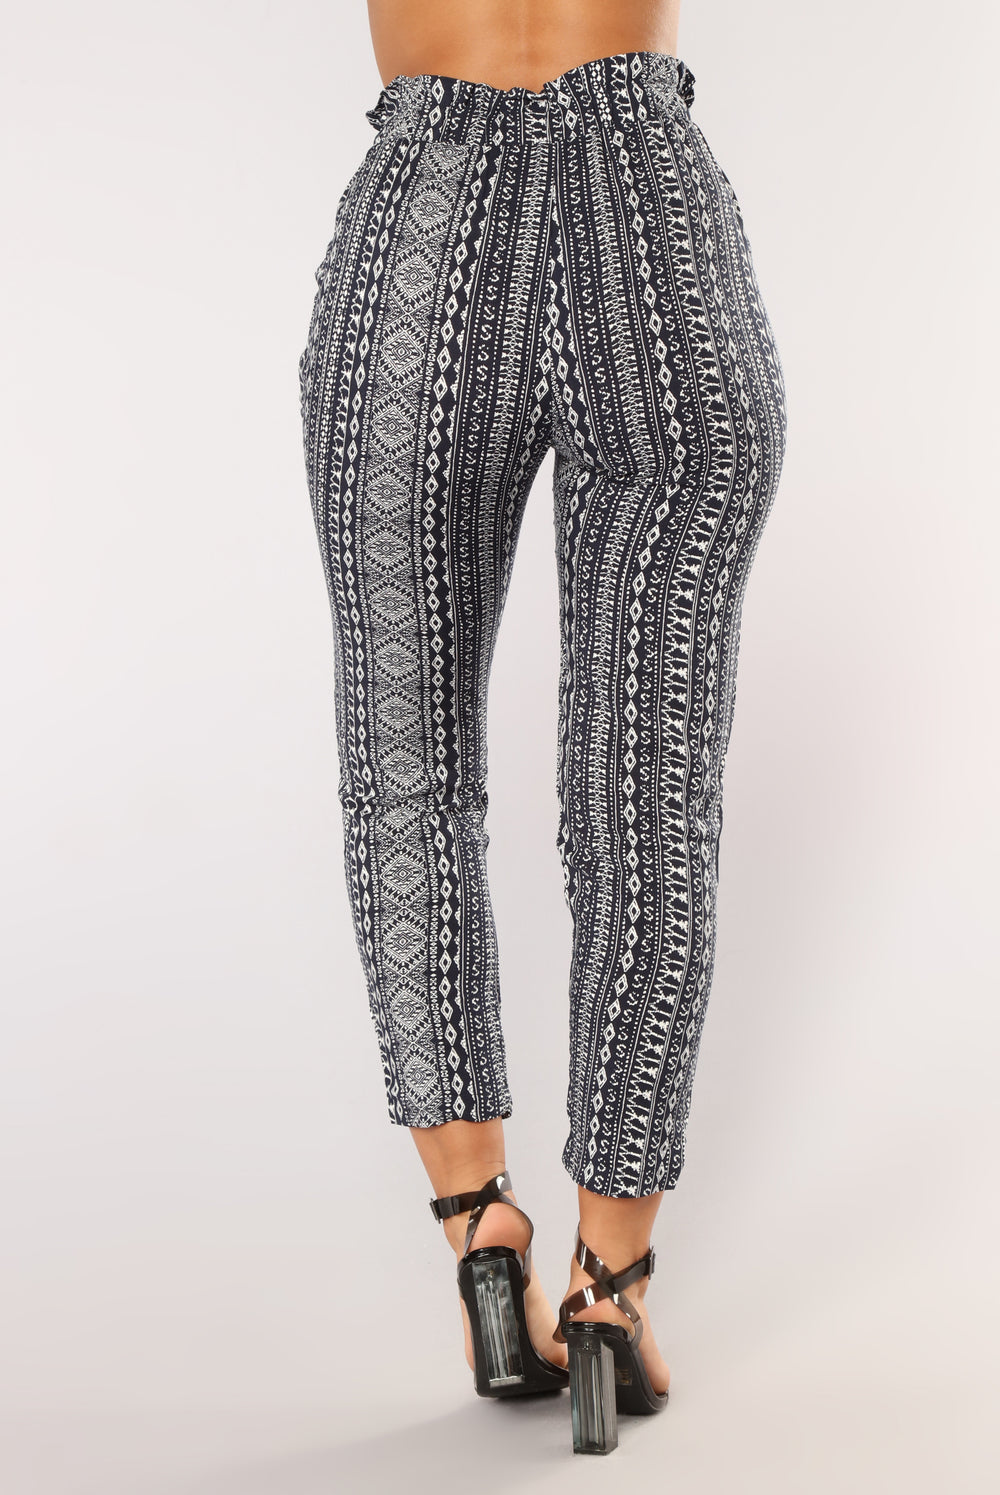 Randi Print Pants - Navy/White